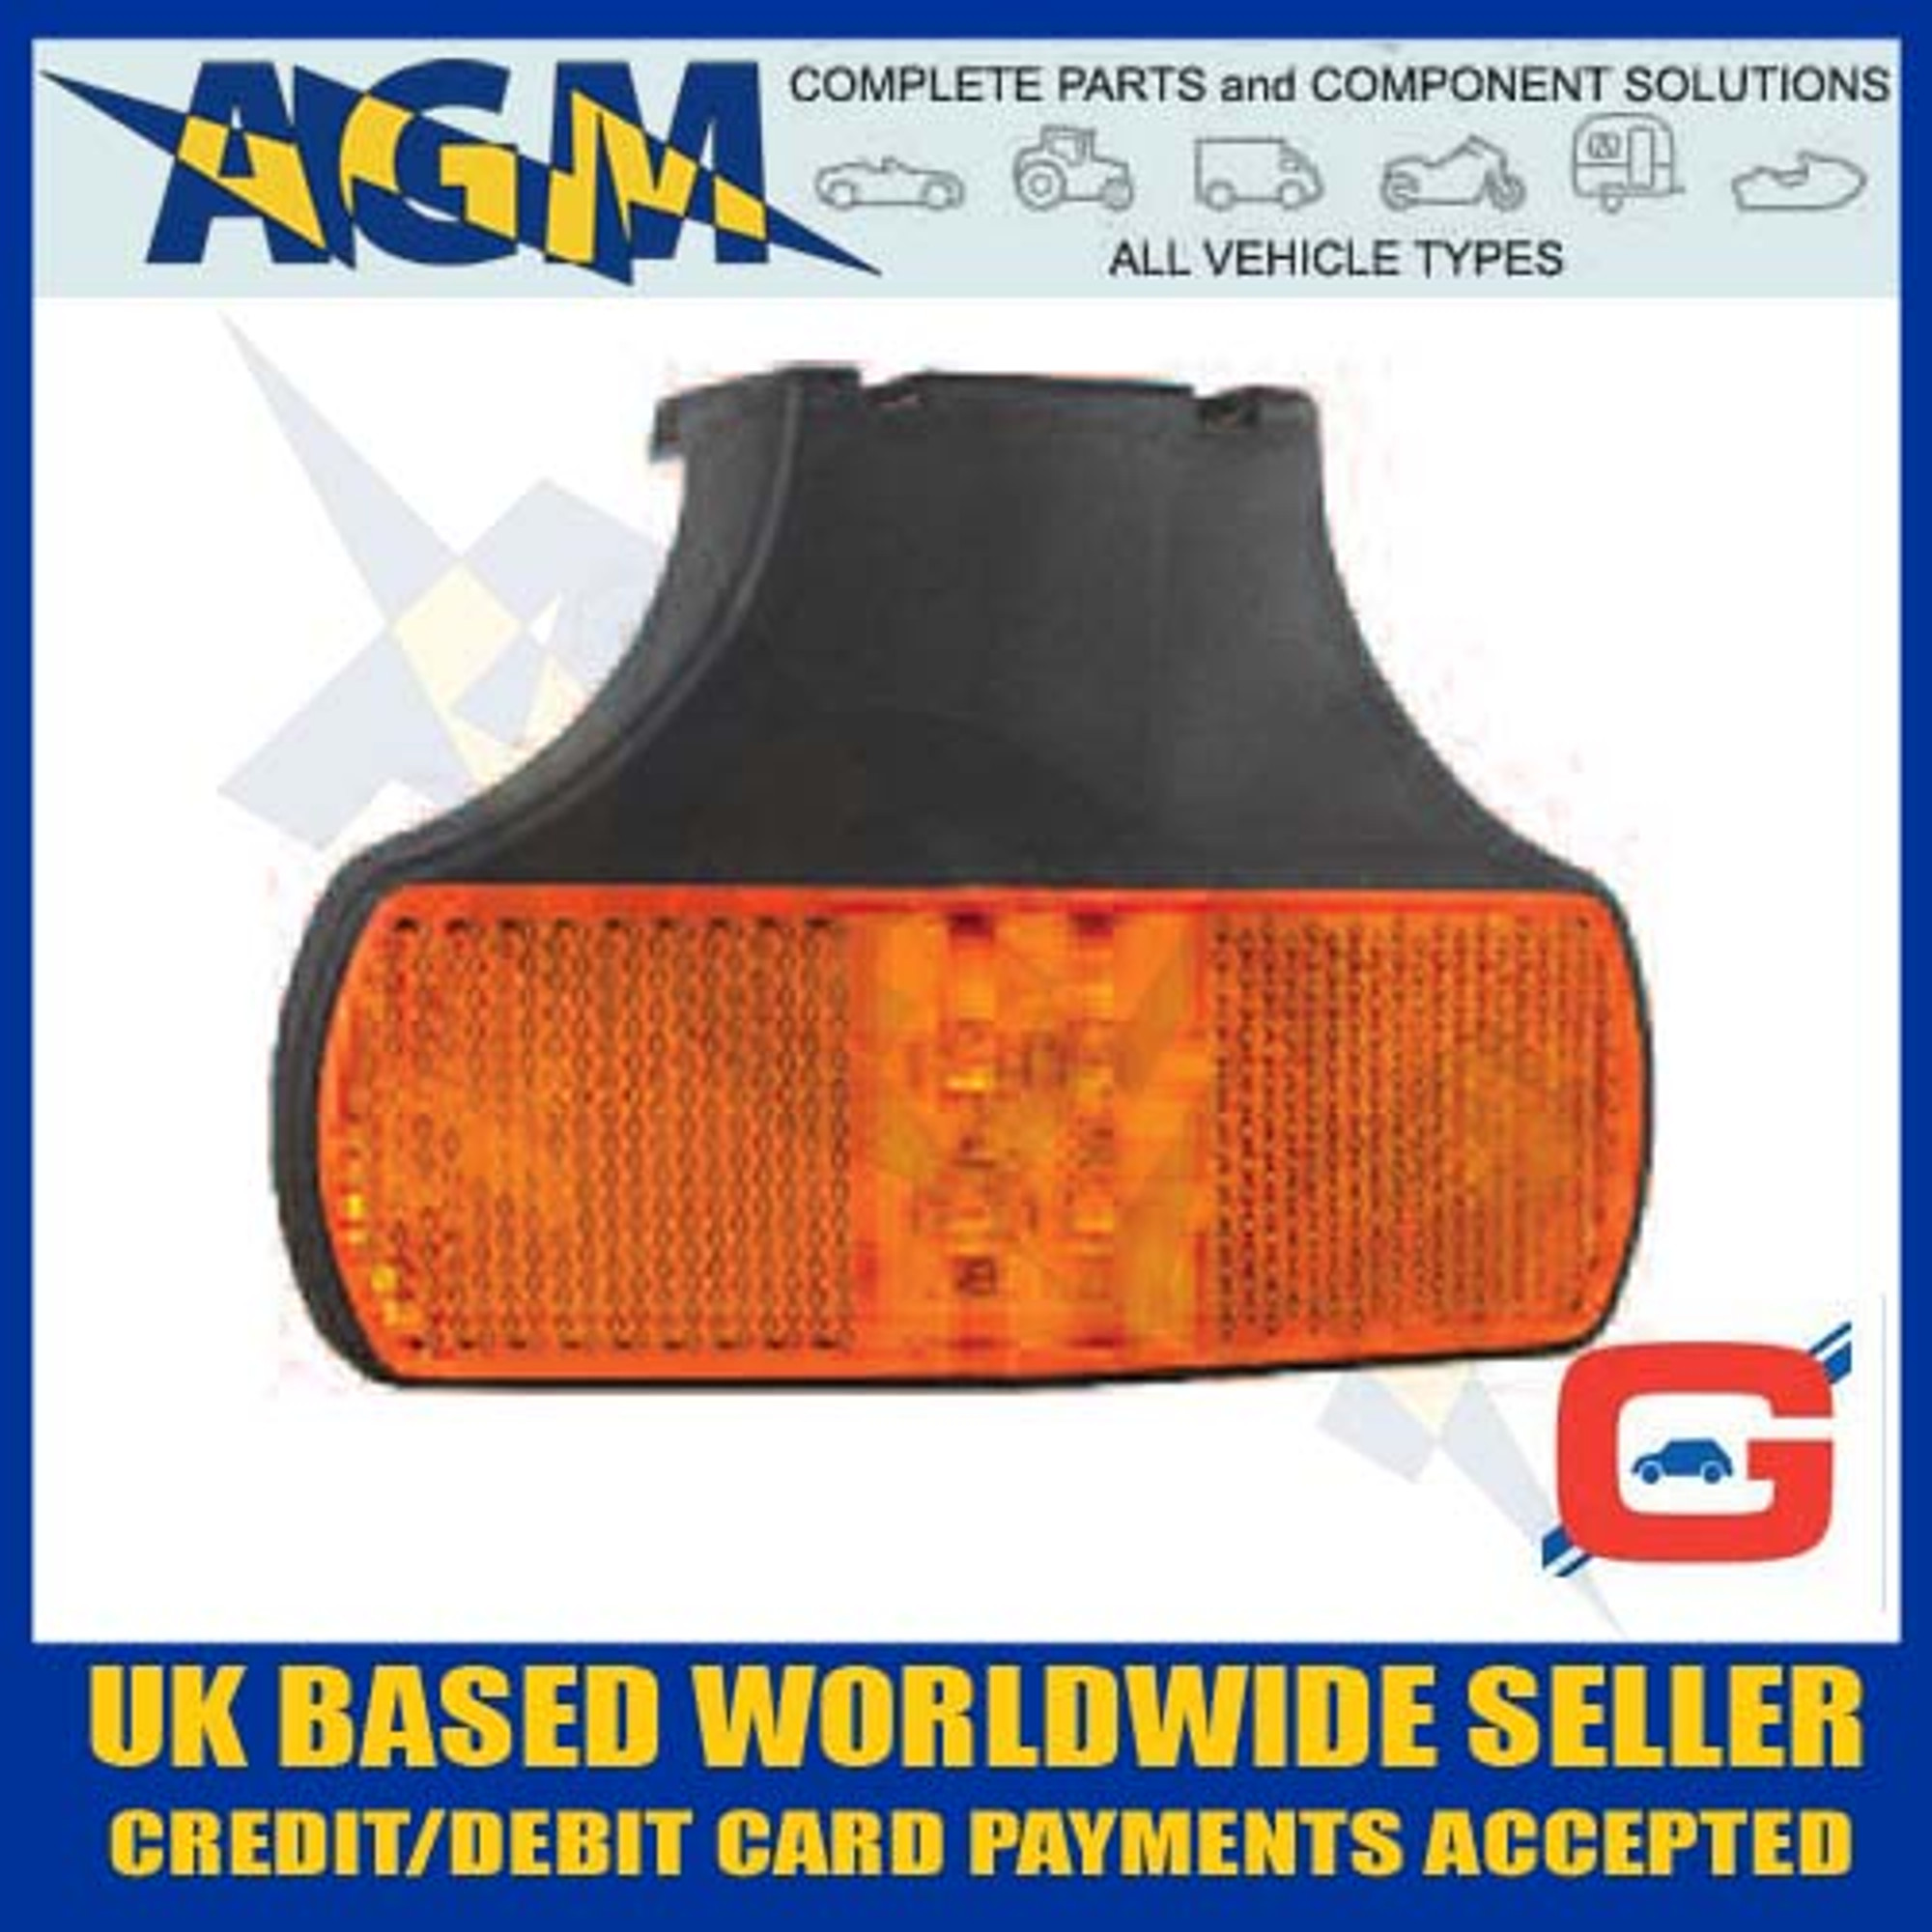 12//24V Amber LED Side Marker Lamp with Reflex Reflector and Superseal Plug